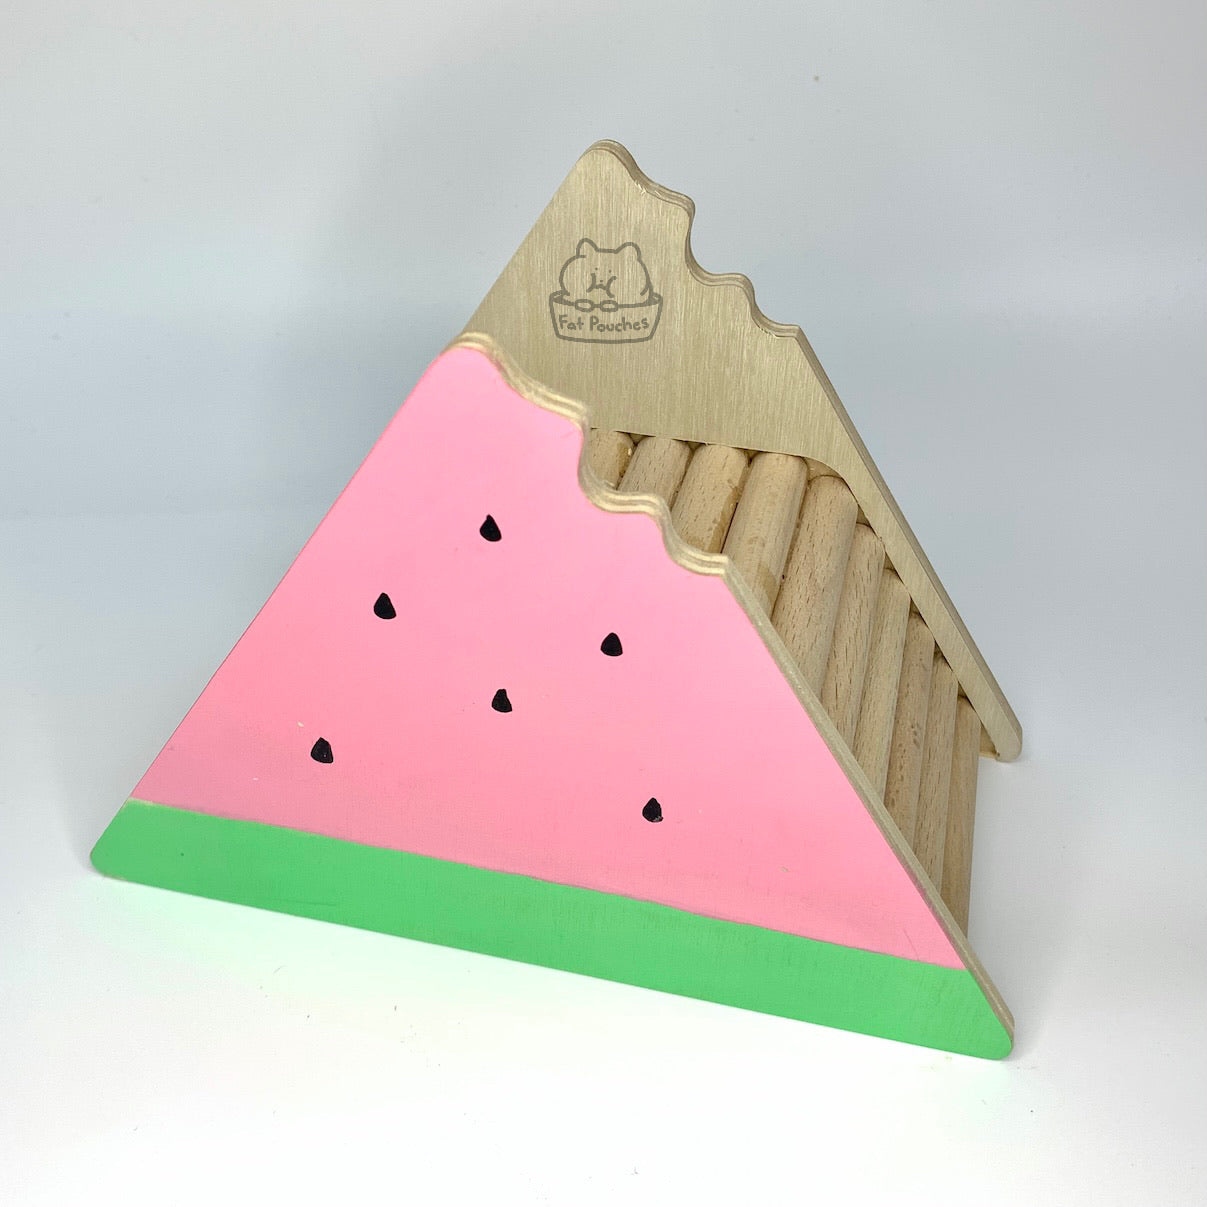 Watermelon Bridge